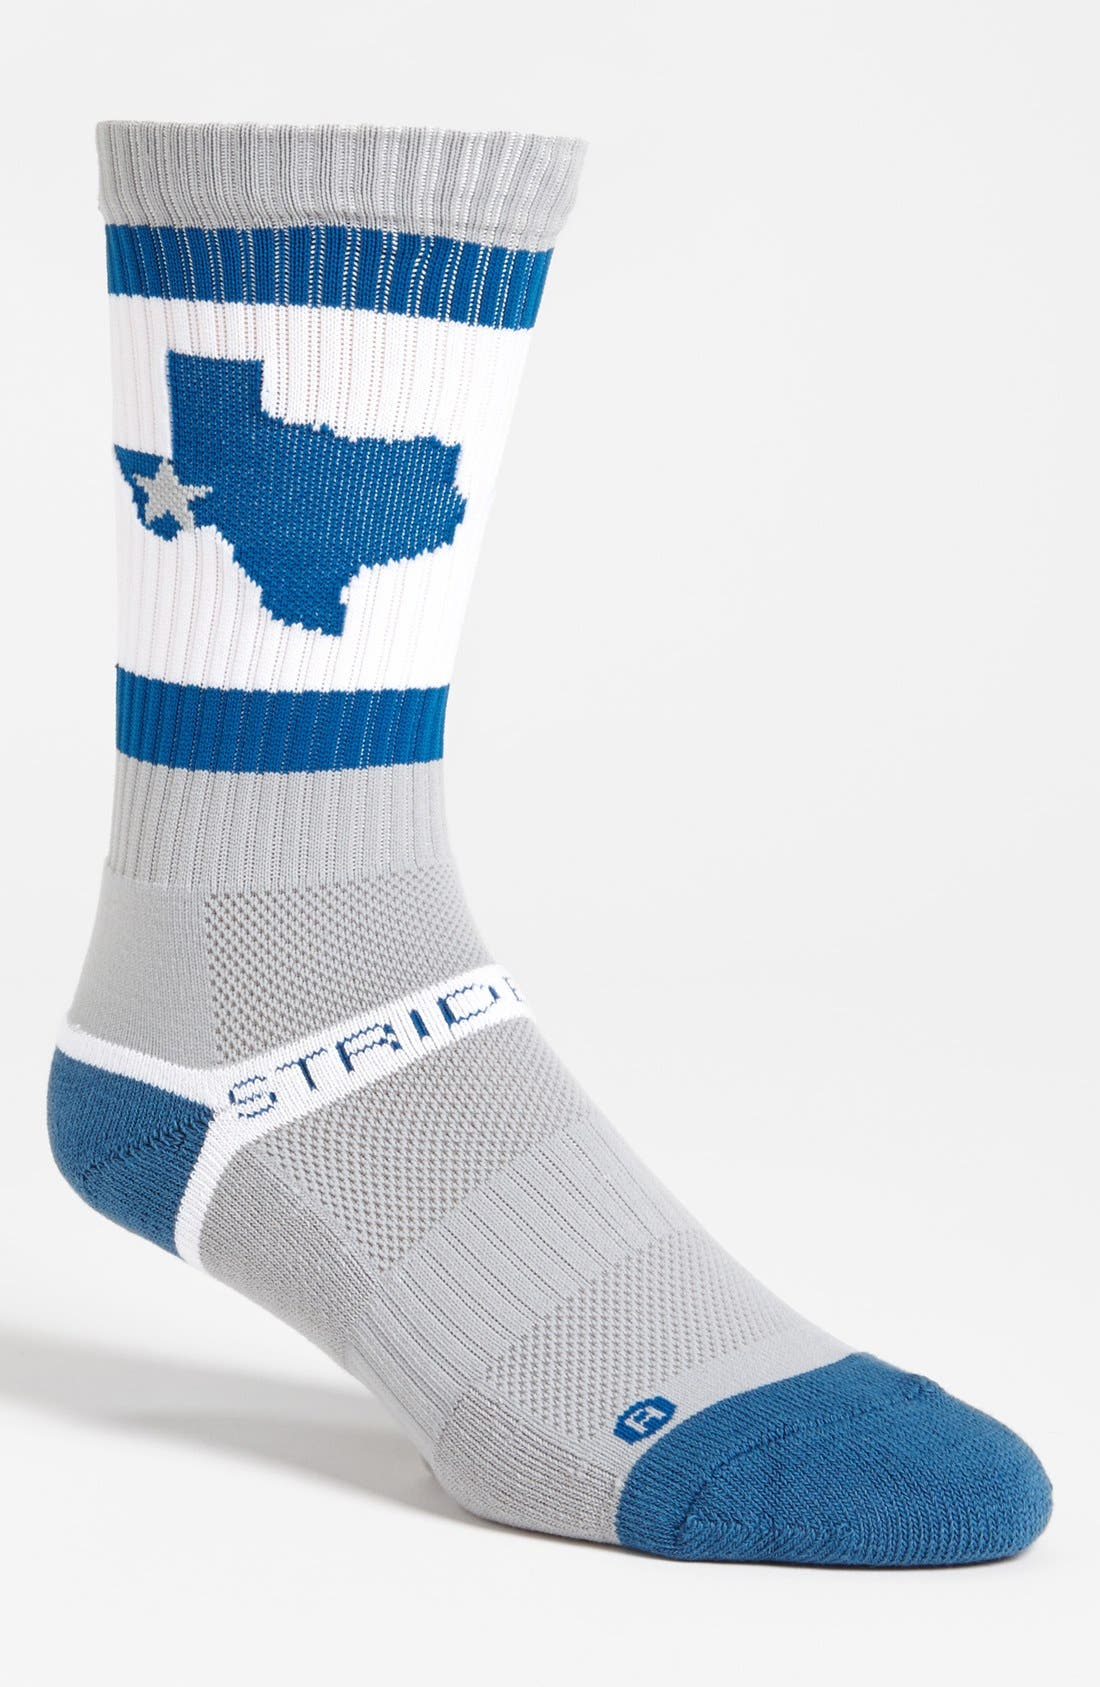 Alternate Image 1 Selected - STRIDELINE 'Texas' Socks